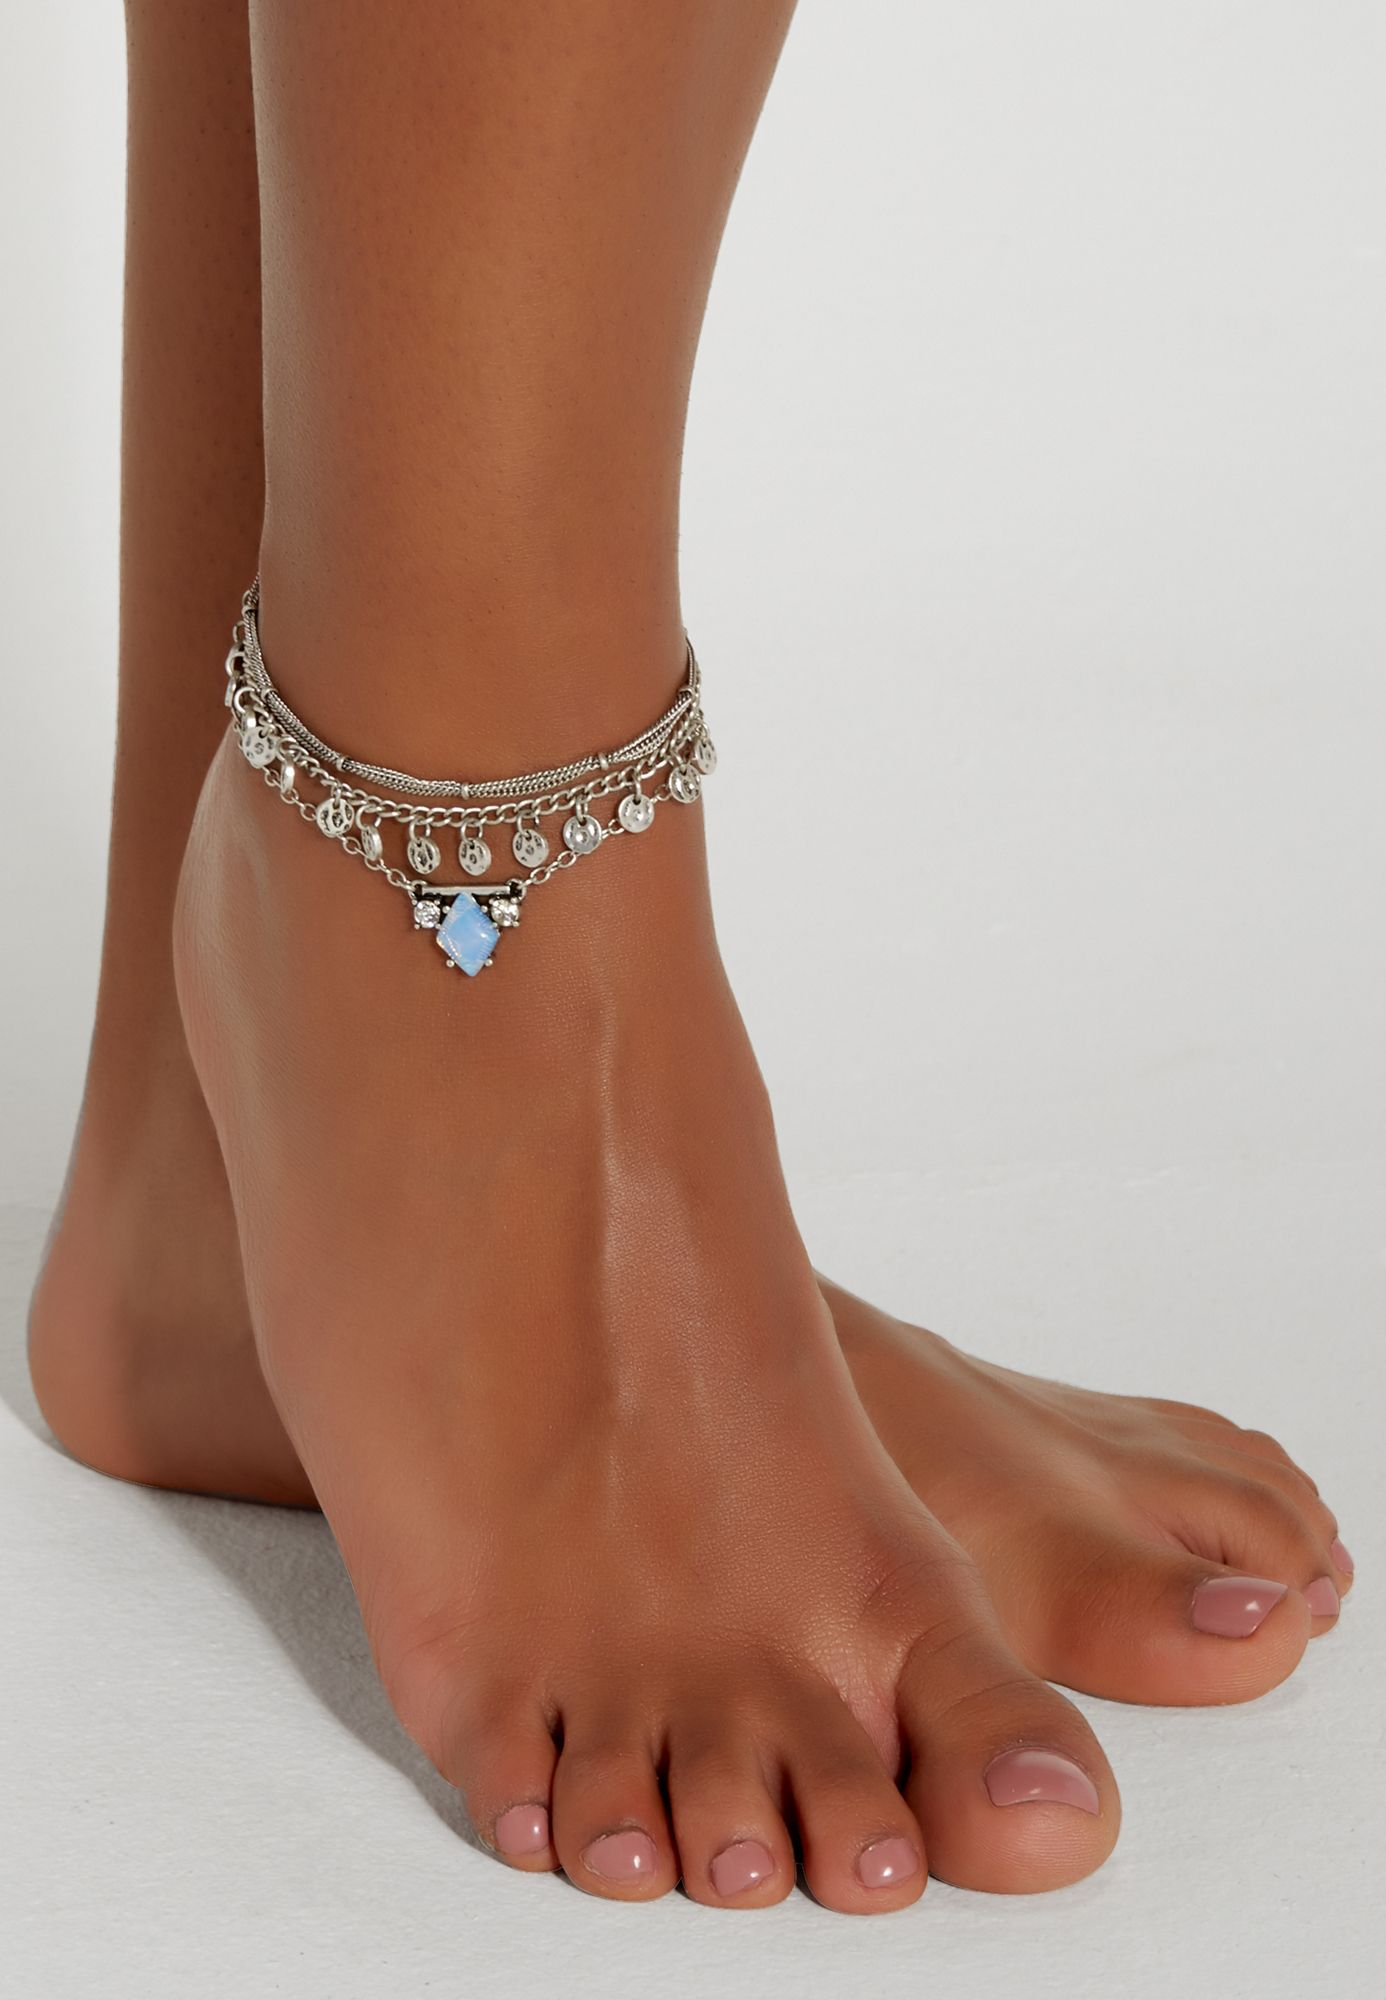 silver on color s leather products anklet bracelet and men black ankle bracelets miansai women hook